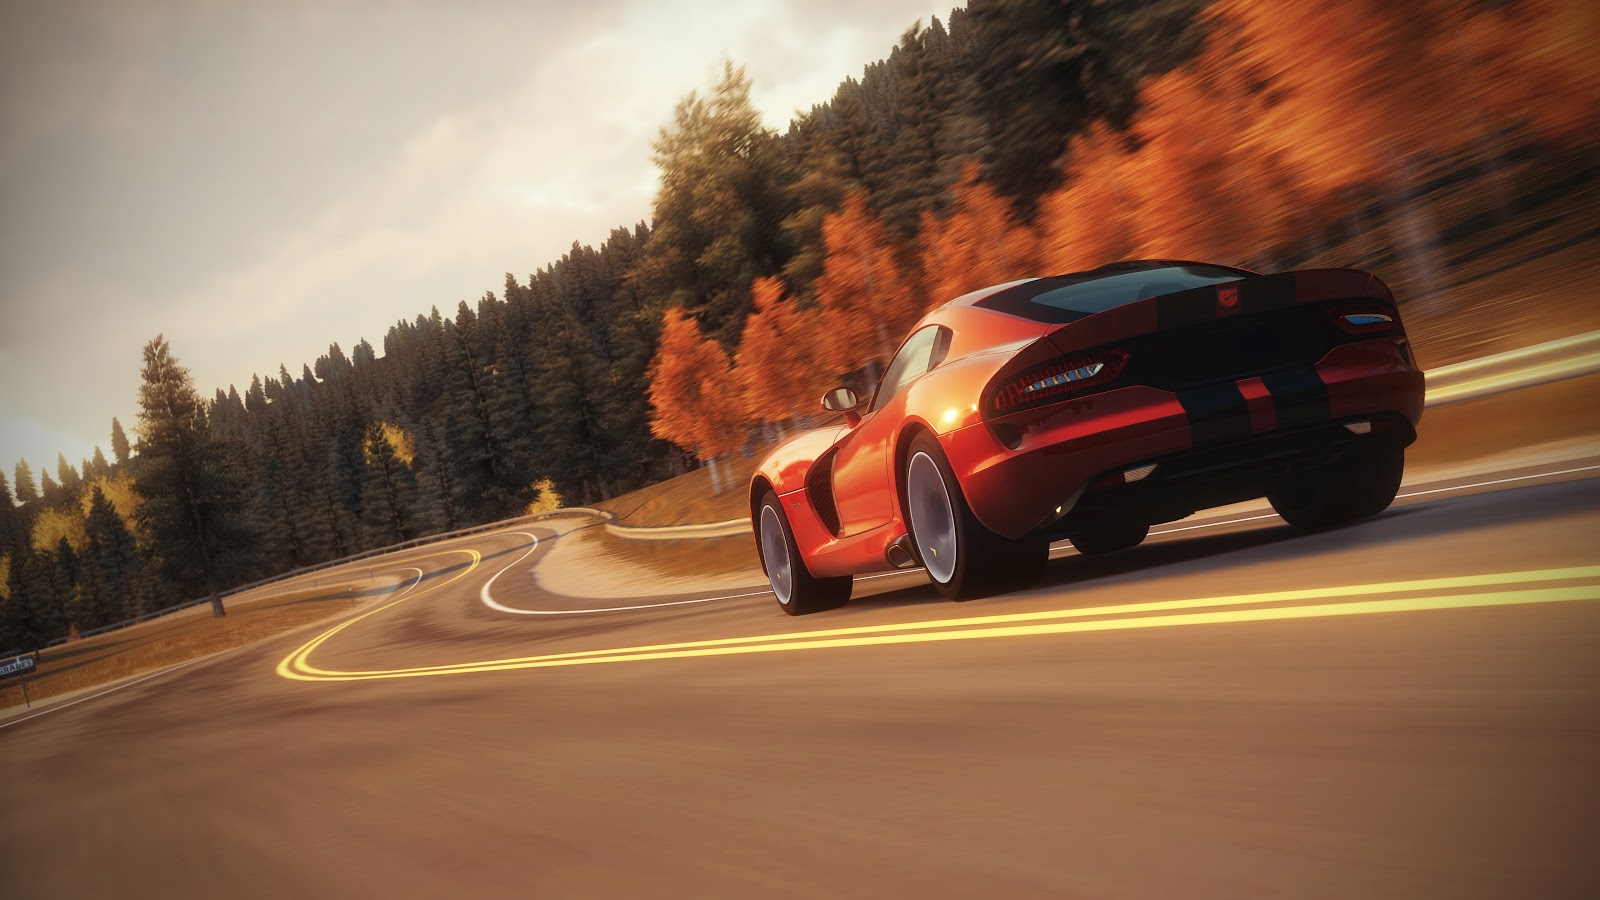 Forza Horizon HD & Widescreen Wallpaper 0.202112503144014